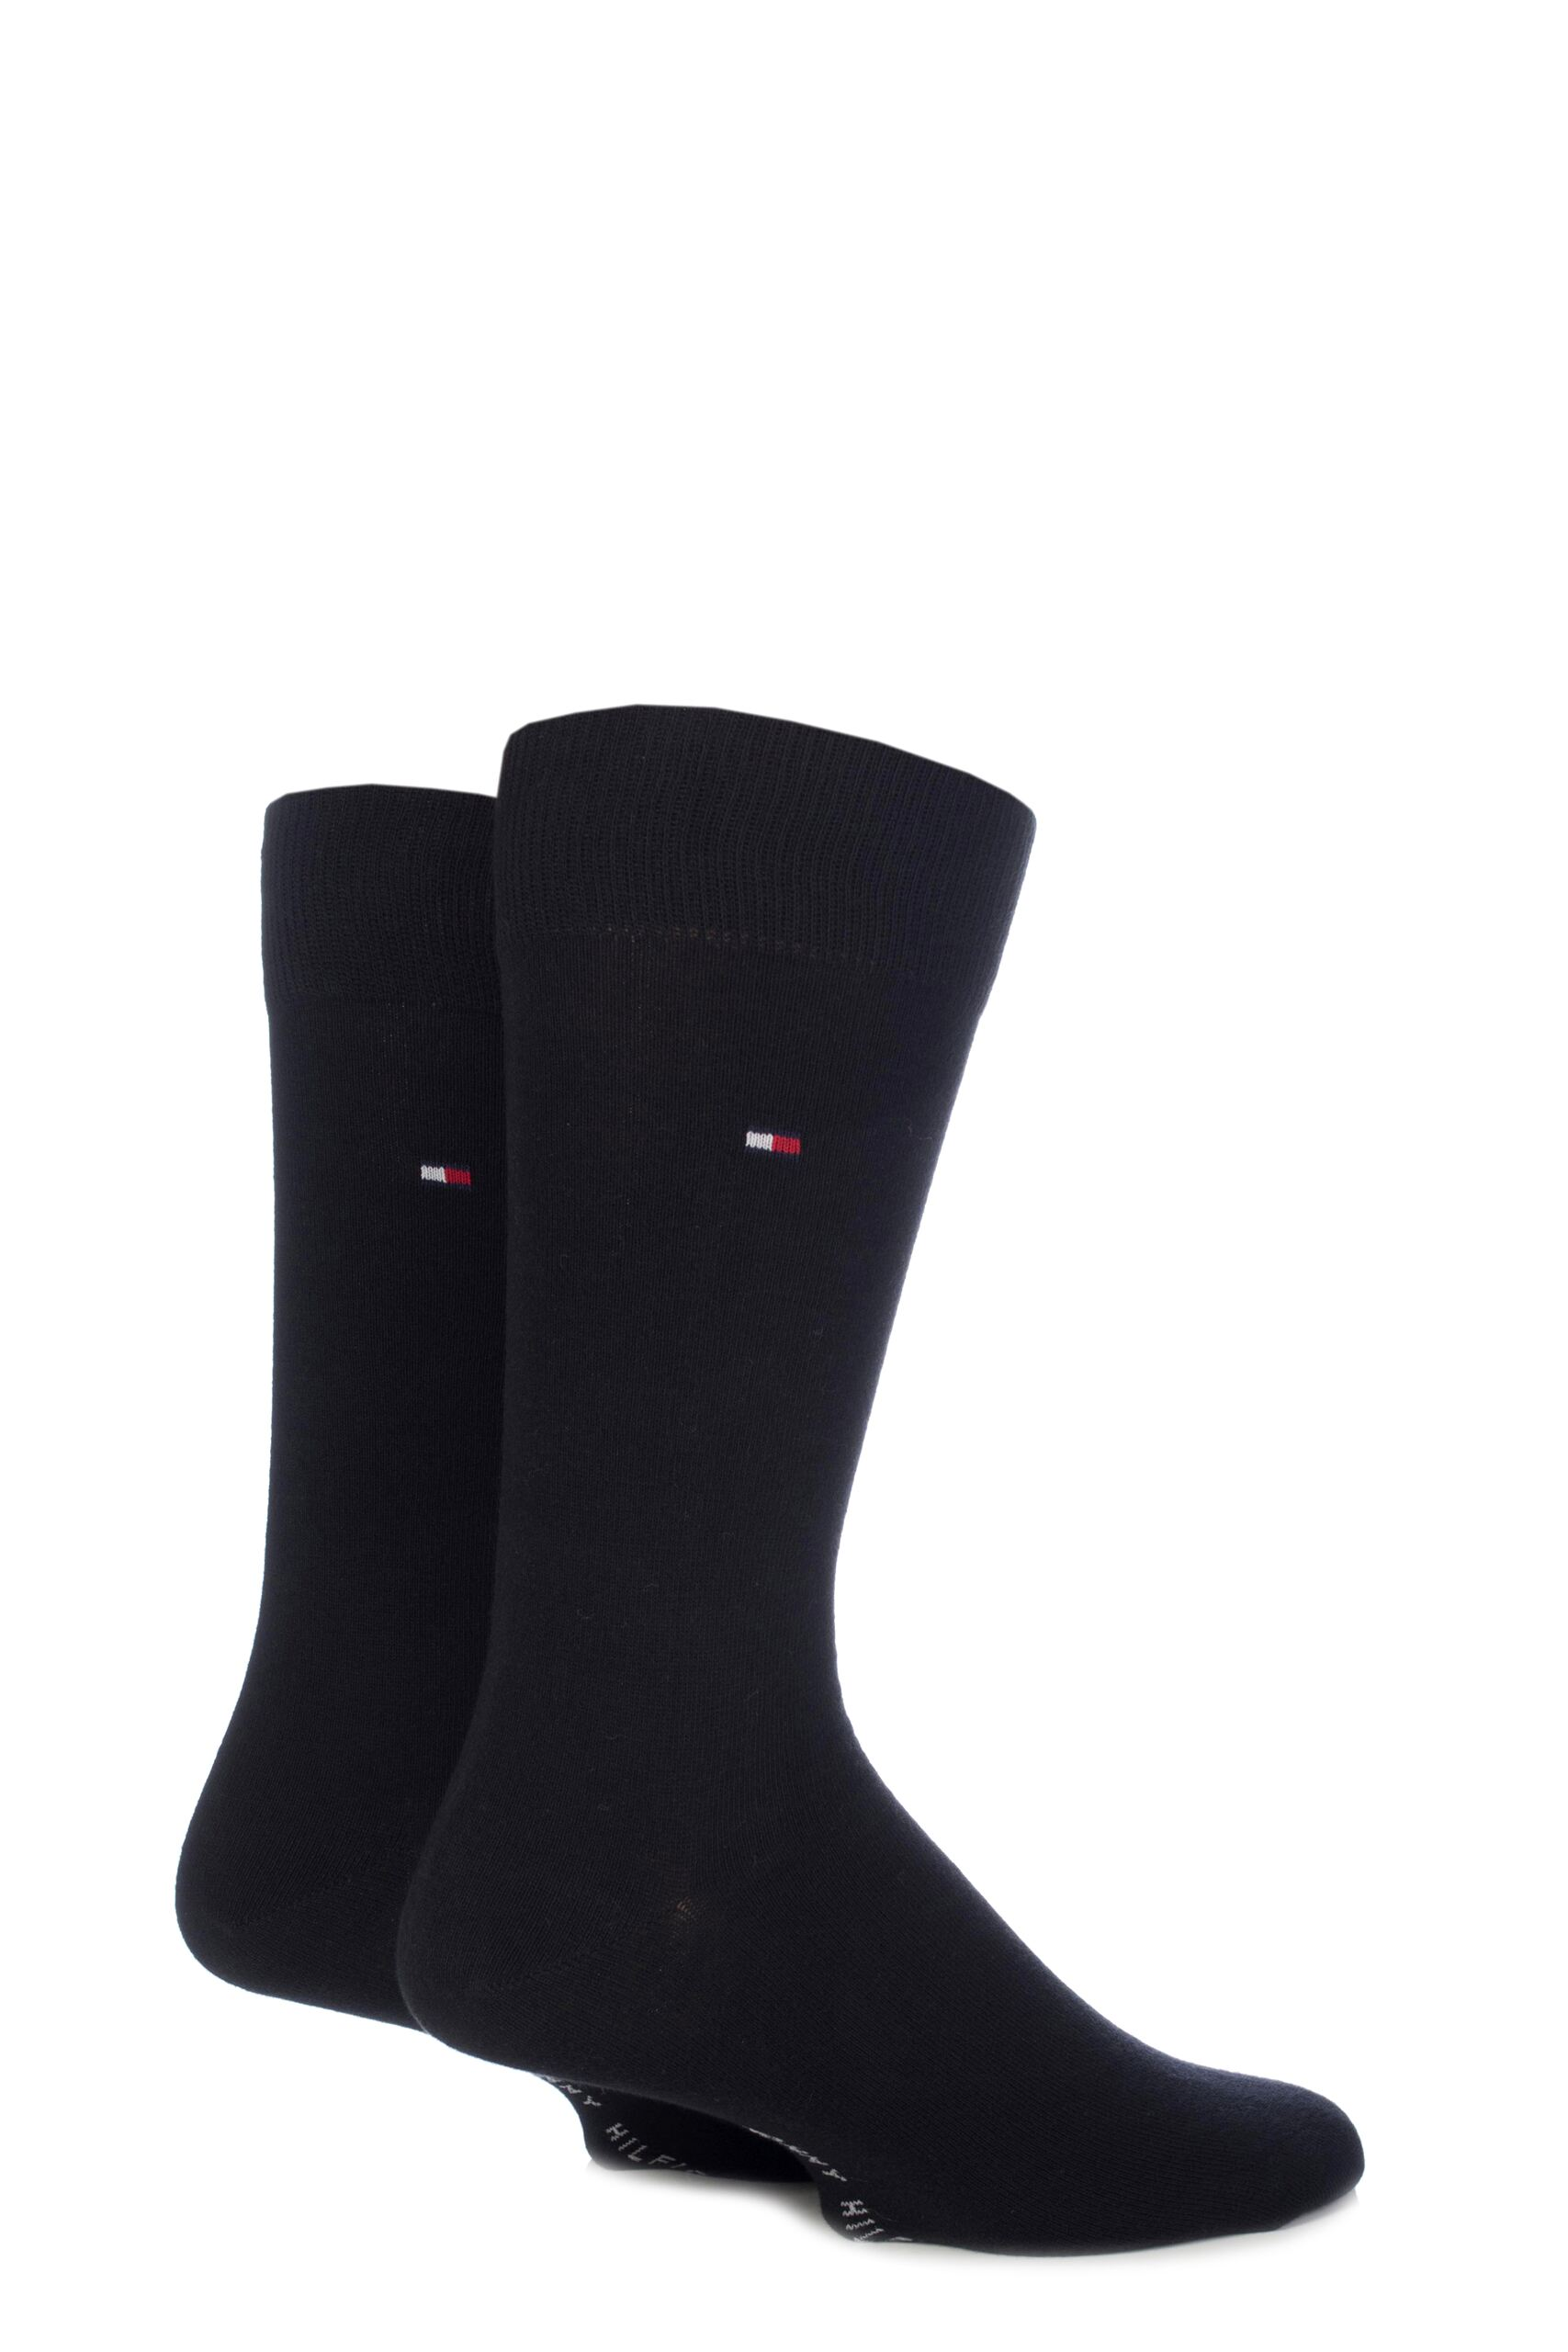 Image of 2 Pair Black Classic Plain Cotton Socks Men's 9-11 Mens - Tommy Hilfiger